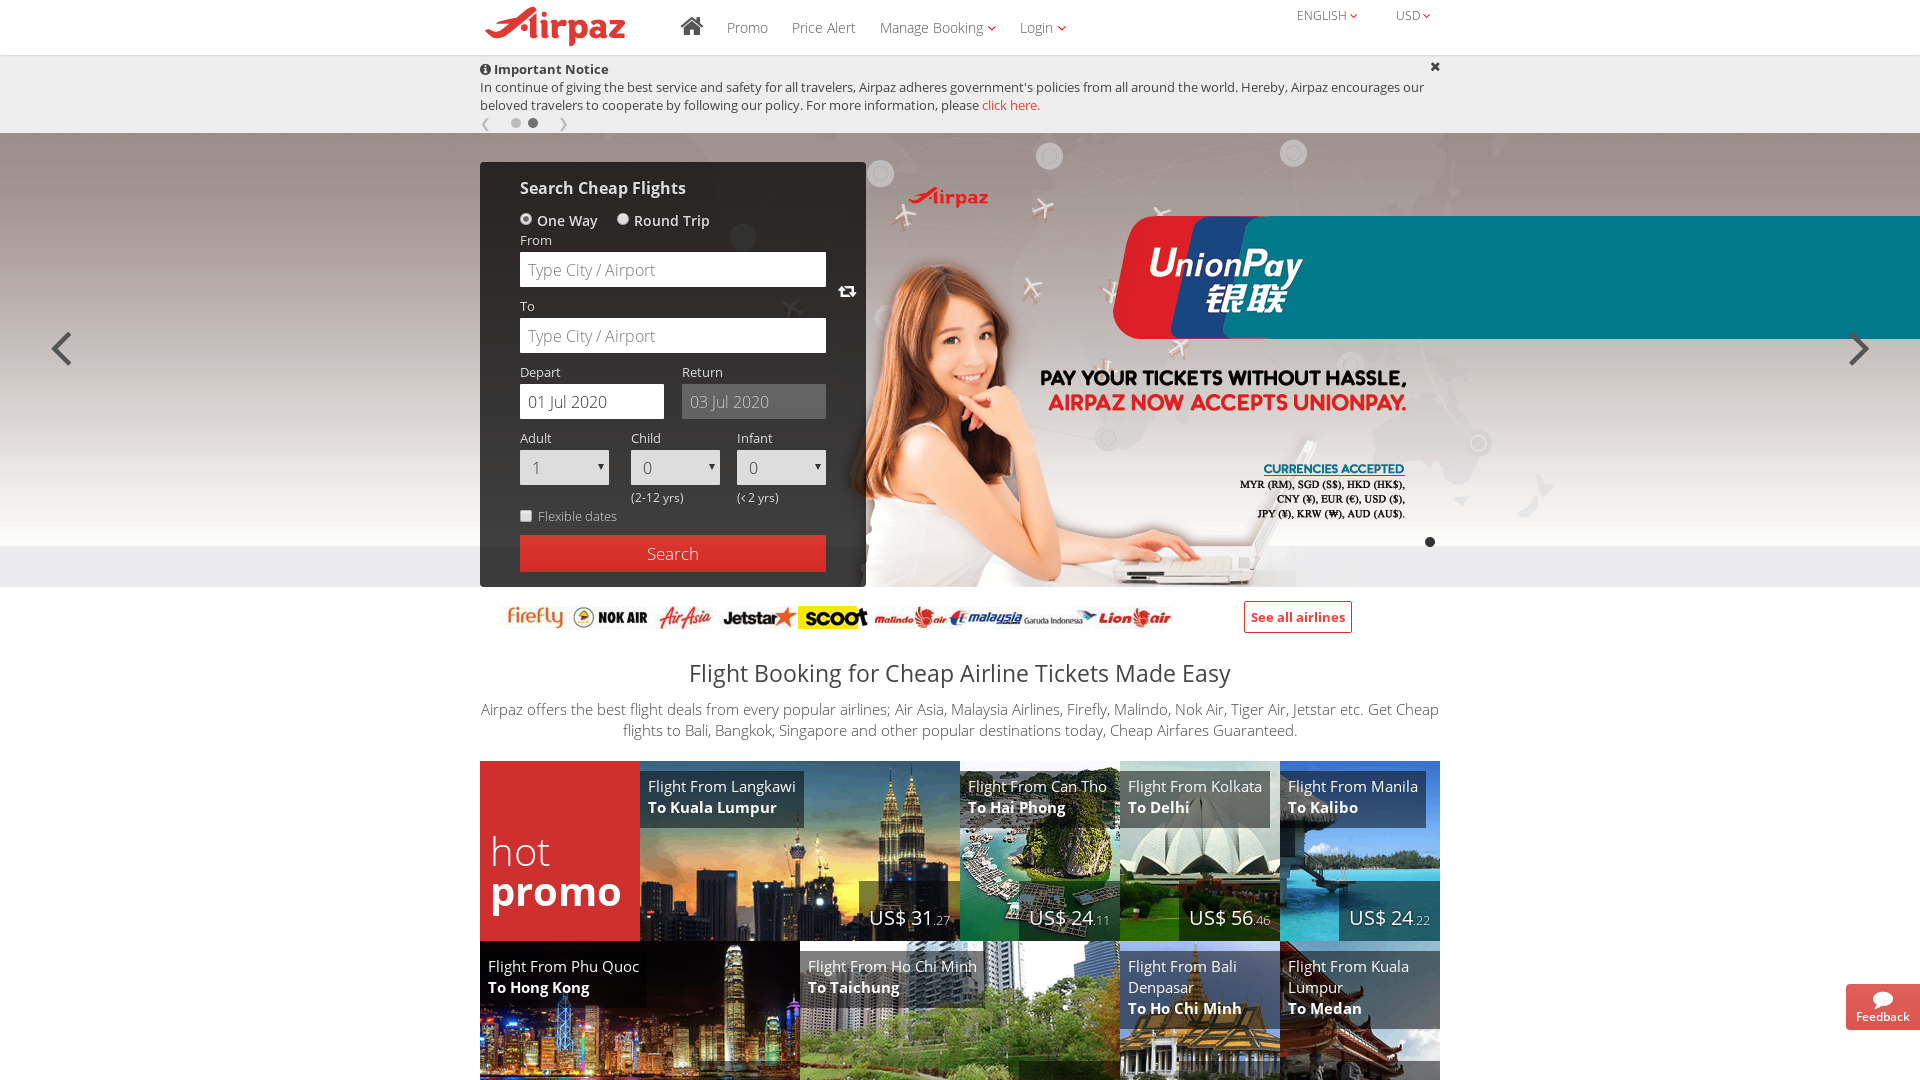 Airpaz / CPS website